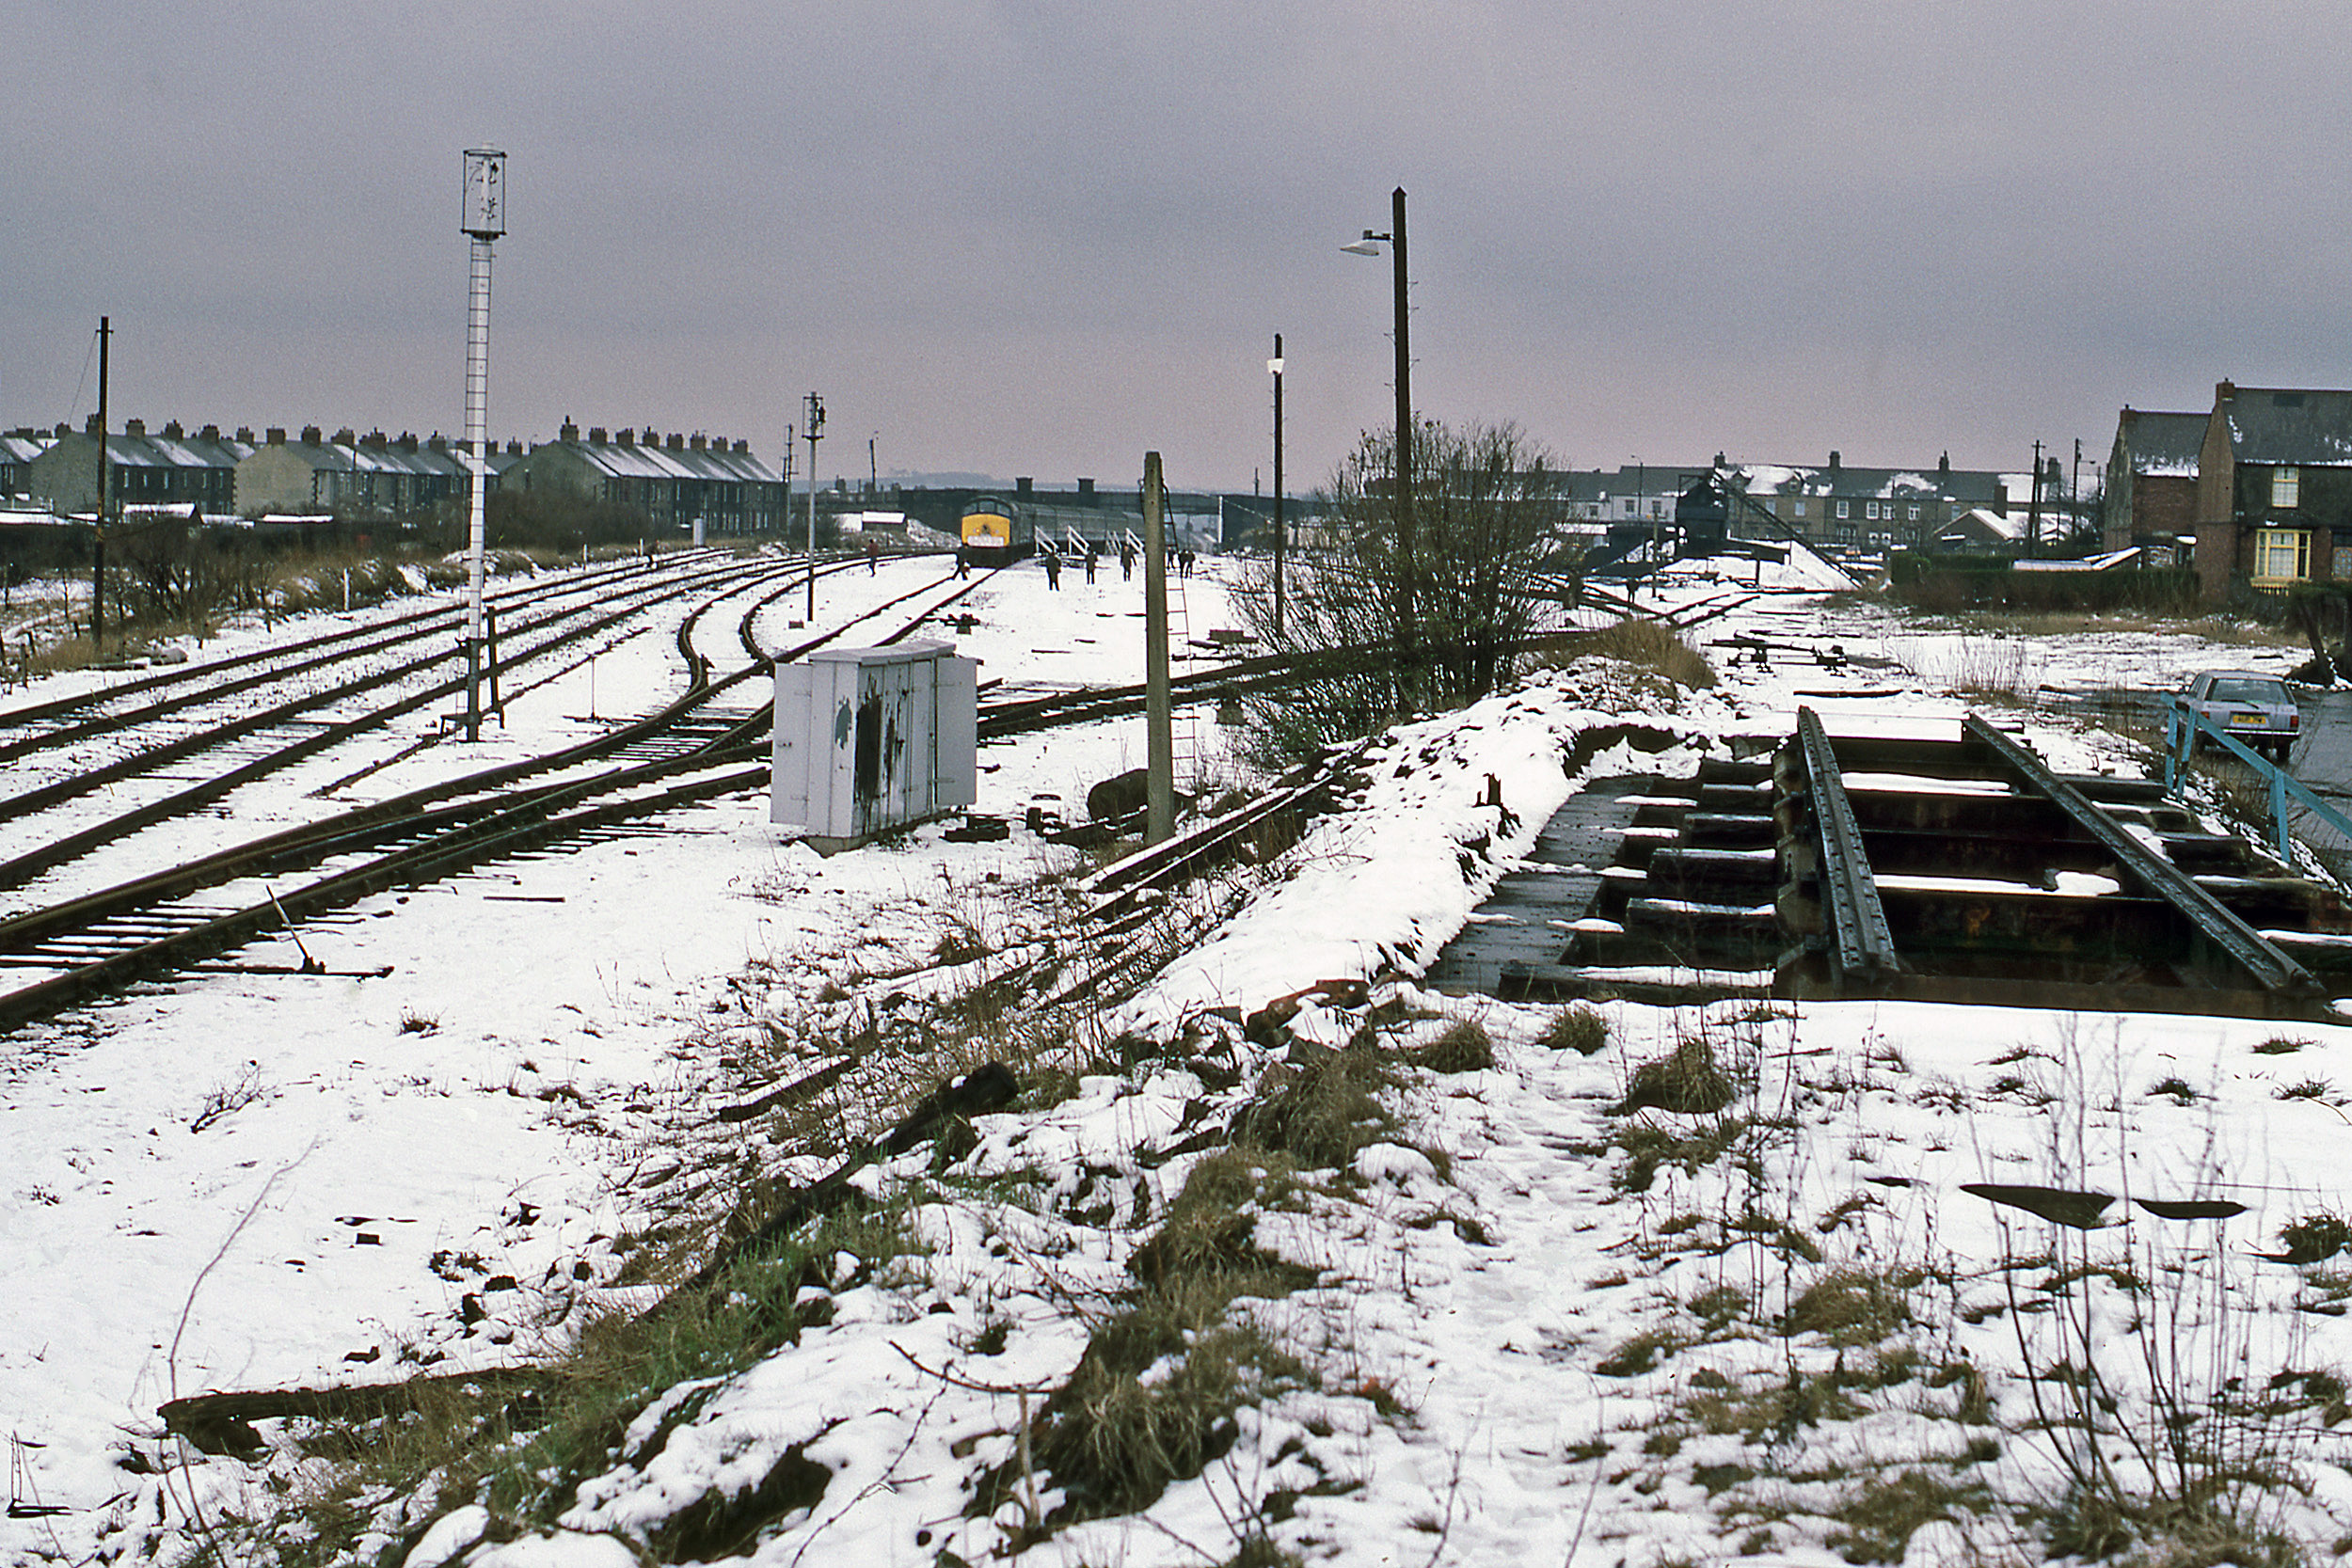 An overall view of the site of Consett station with 46026 in the background. Not the remains of the coal drops in the foreground and the coal yard (the last business served by the line) in the left background. Photo copyright Stephen McGahon